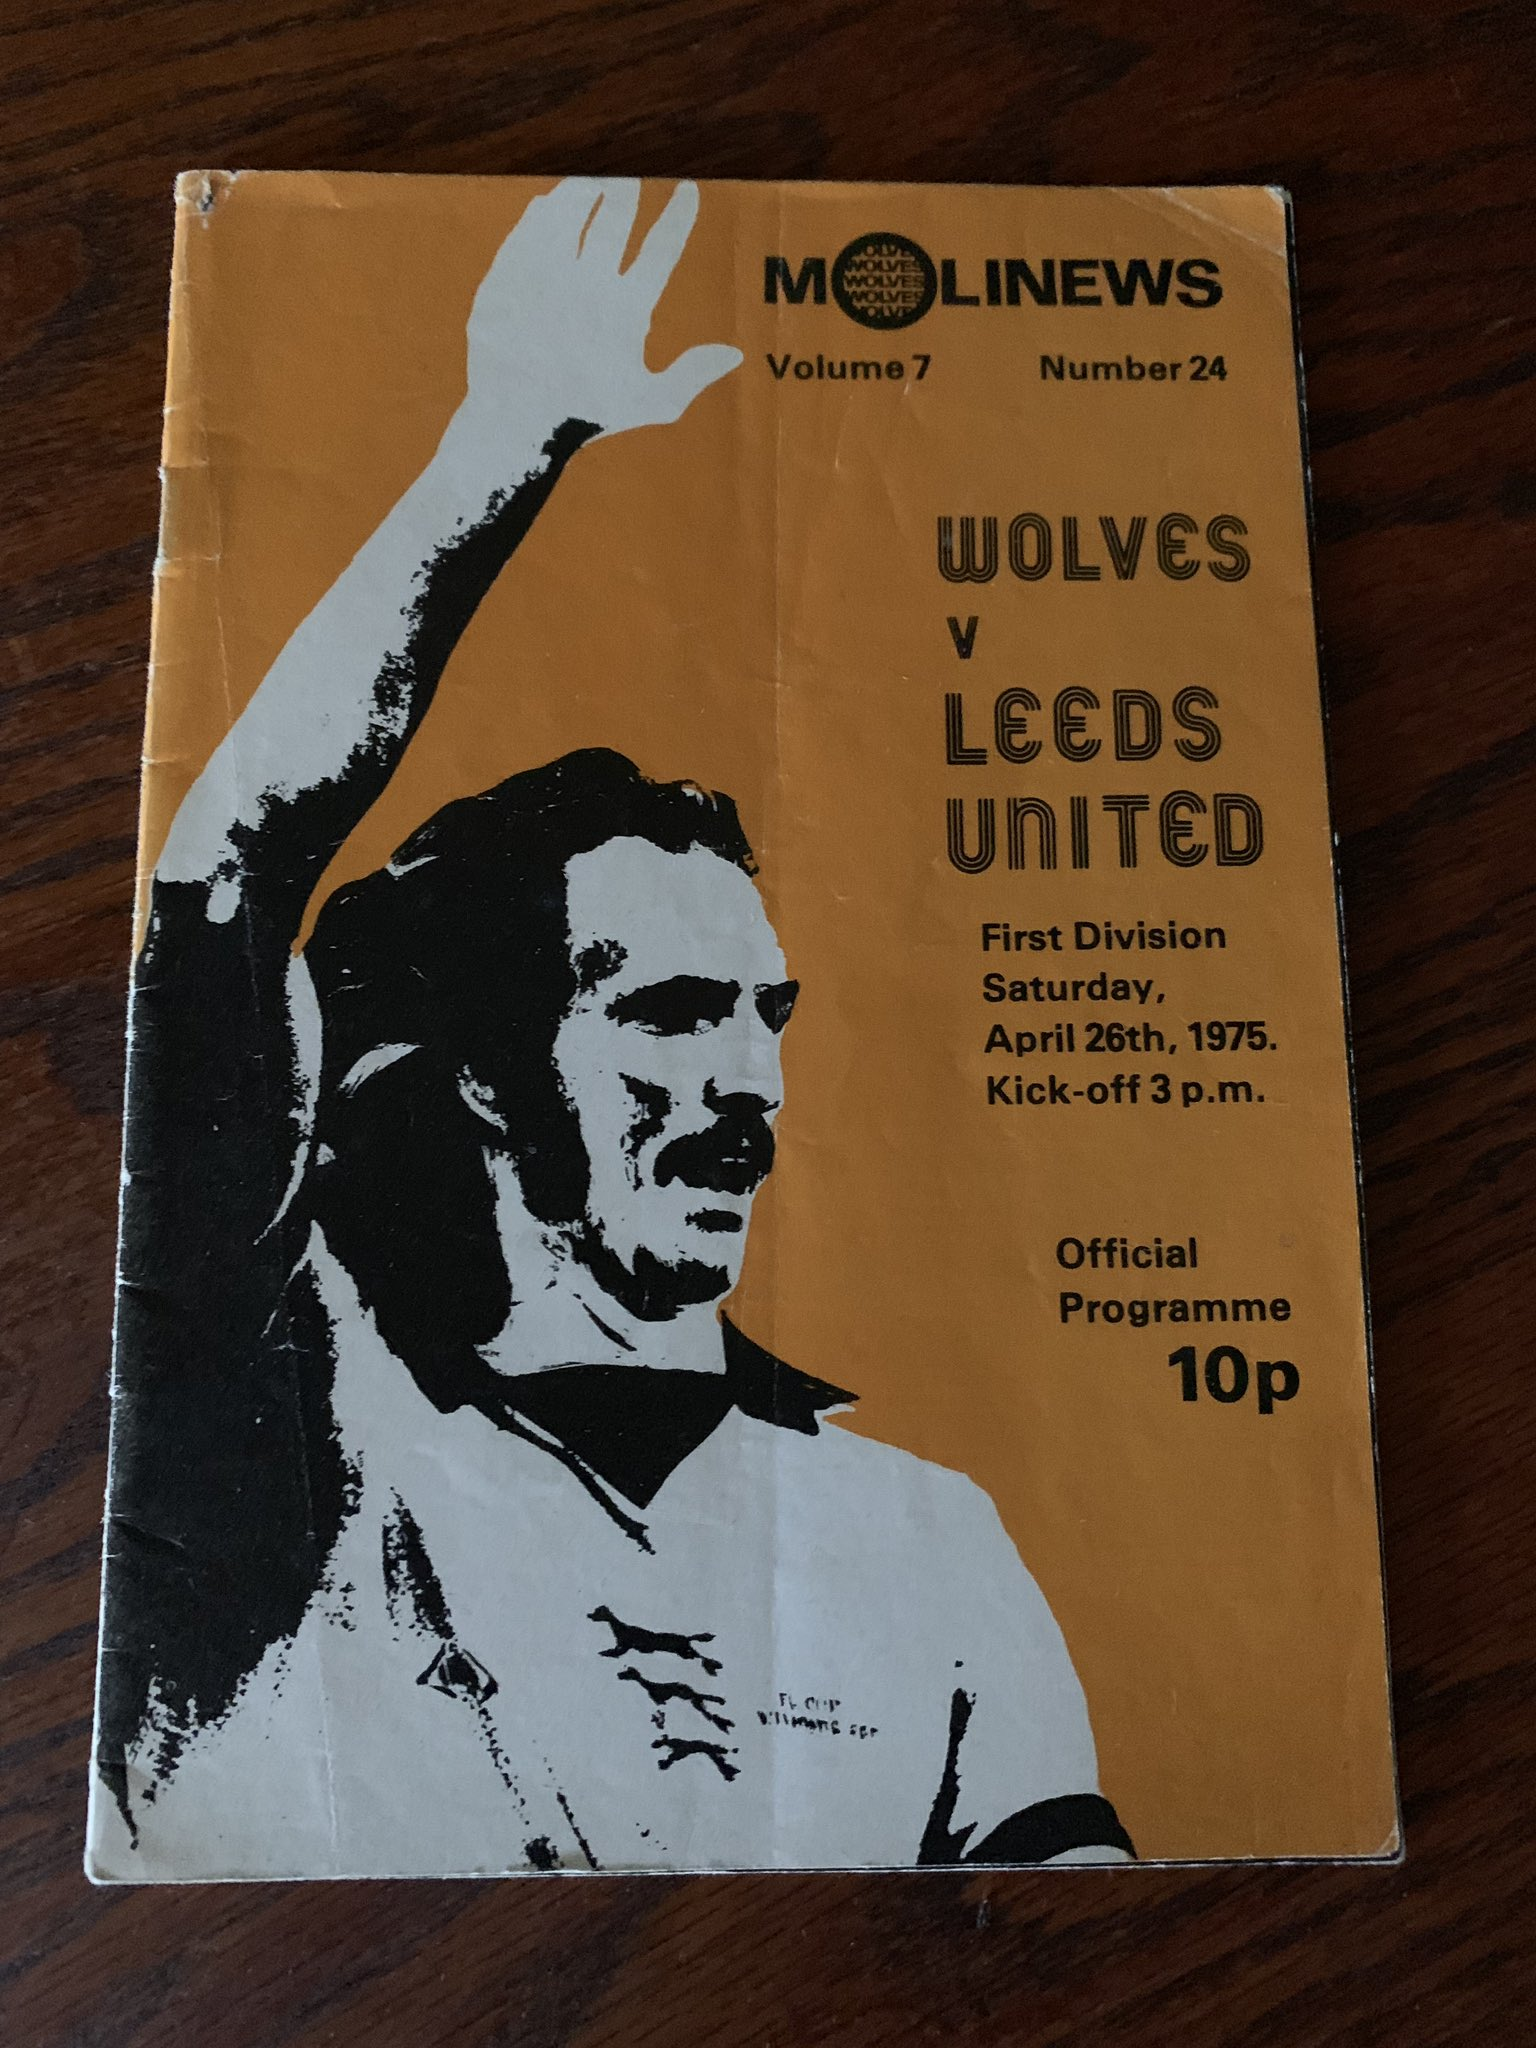 12 Years after the great mans death,I just found the programme from his last appearance in The Old Gold And Black #wwfc #thedoog https://t.co/Rd5fckKIPJ